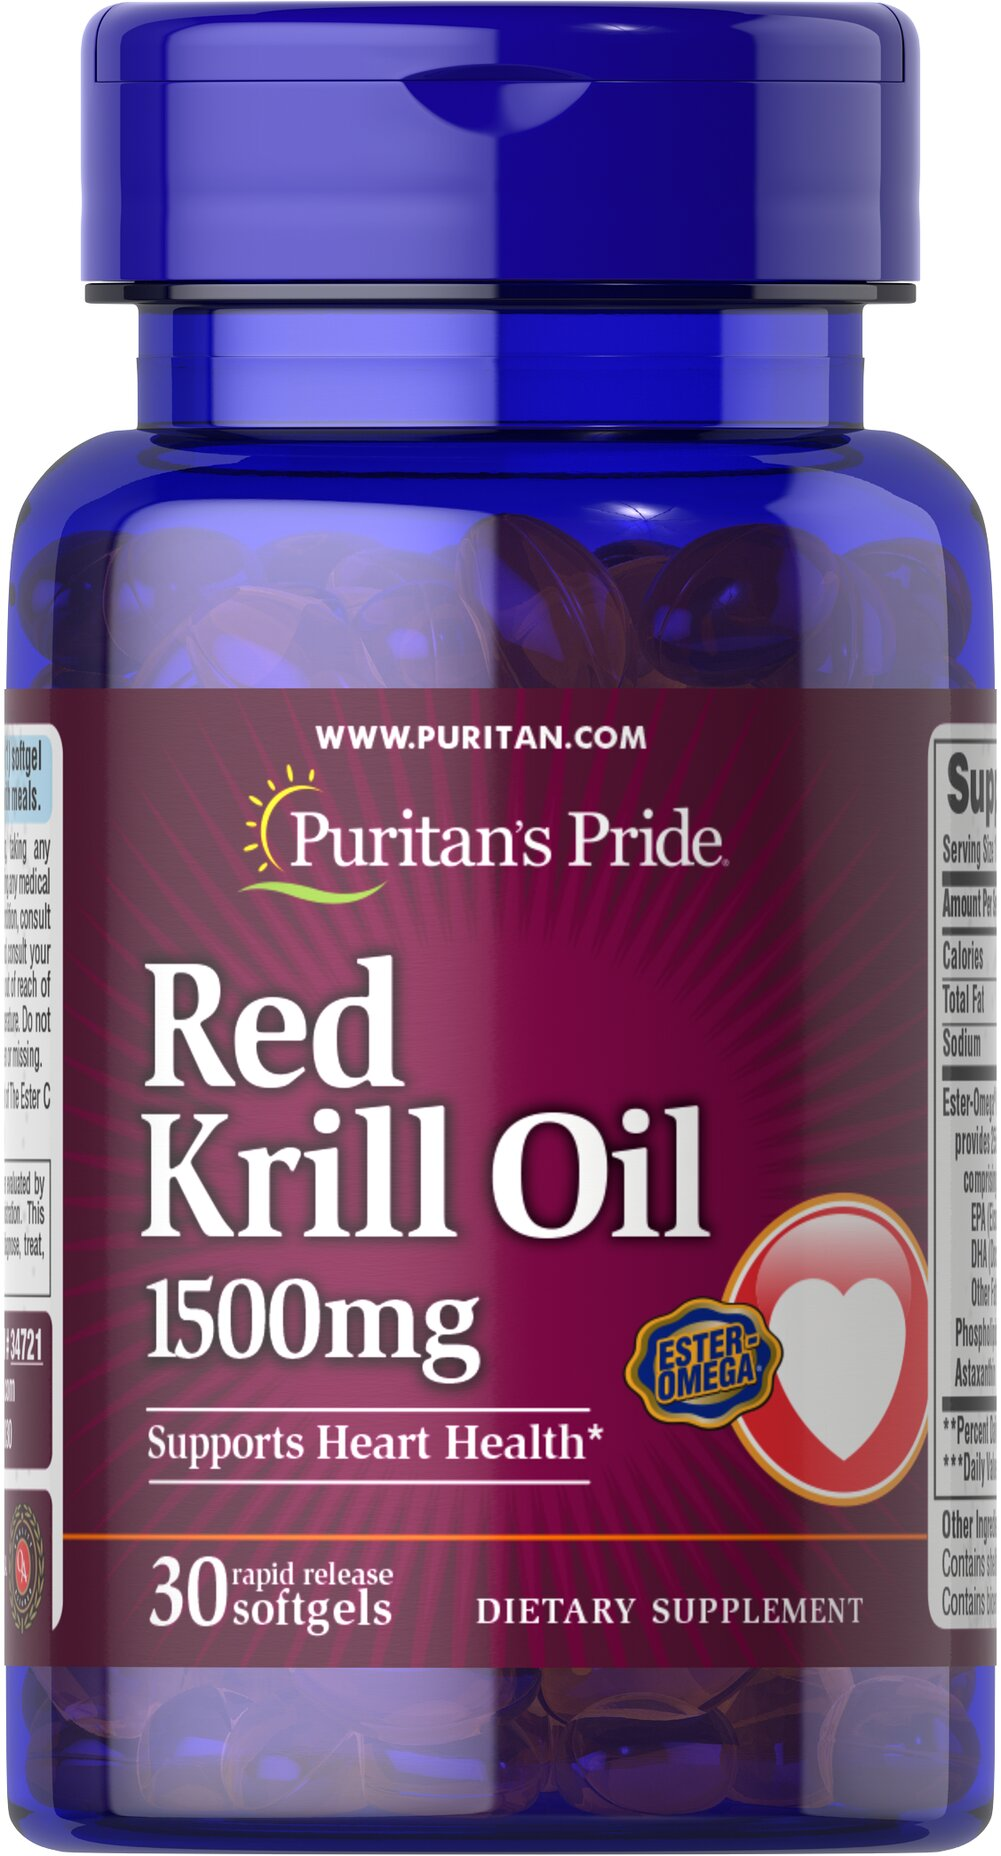 "Maximum Strength Red Krill Oil 1500 mg (255 mg Active Omega-3) <p><strong>With Naturally Occurring Astaxanthin</strong></p><p>Supports a healthy heart.**</p><p>Provides you with Omega-3 fatty acids — the ""good"" fats important for cellular and metabolic health.**</p><p></p><p>Rapid Release softgels facilitate quick absorption.**</p> 30 Softgels 1500 mg"